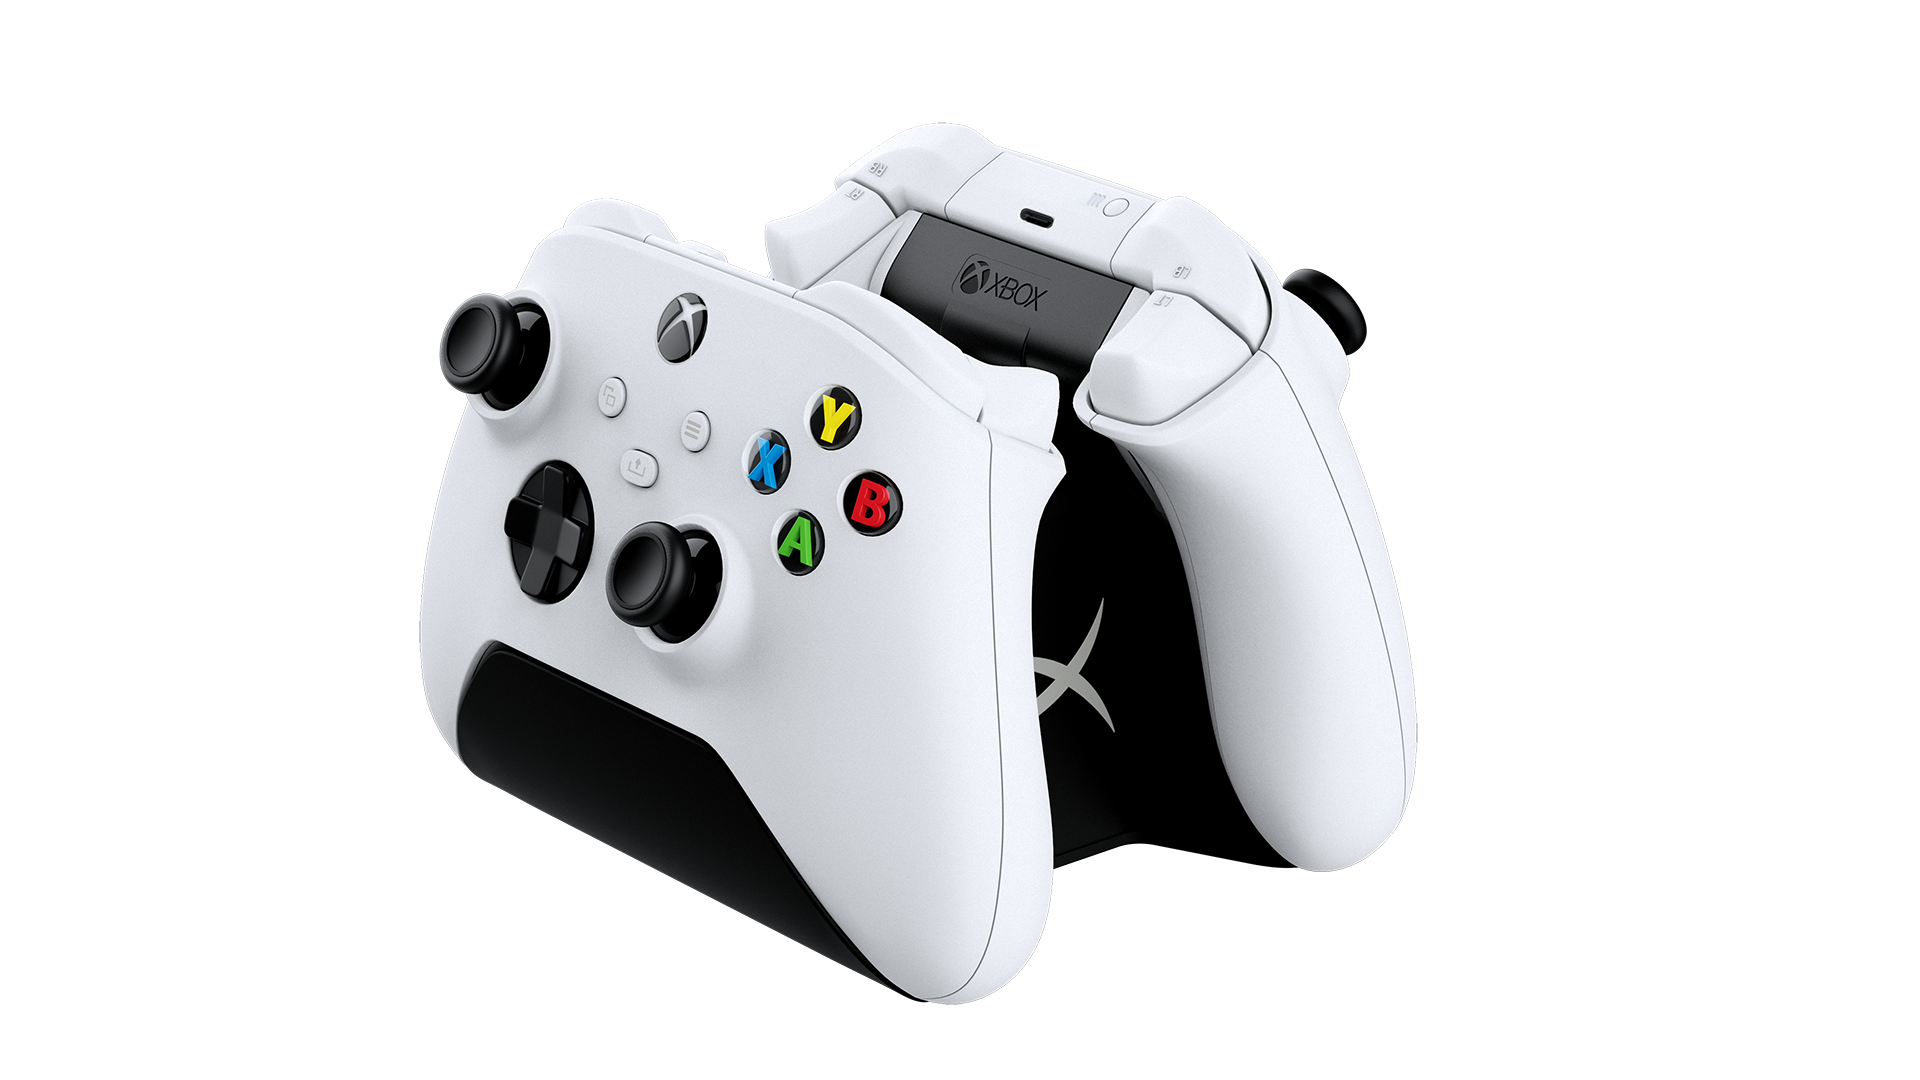 chargeplay-duo-xbox-main-series-s.png